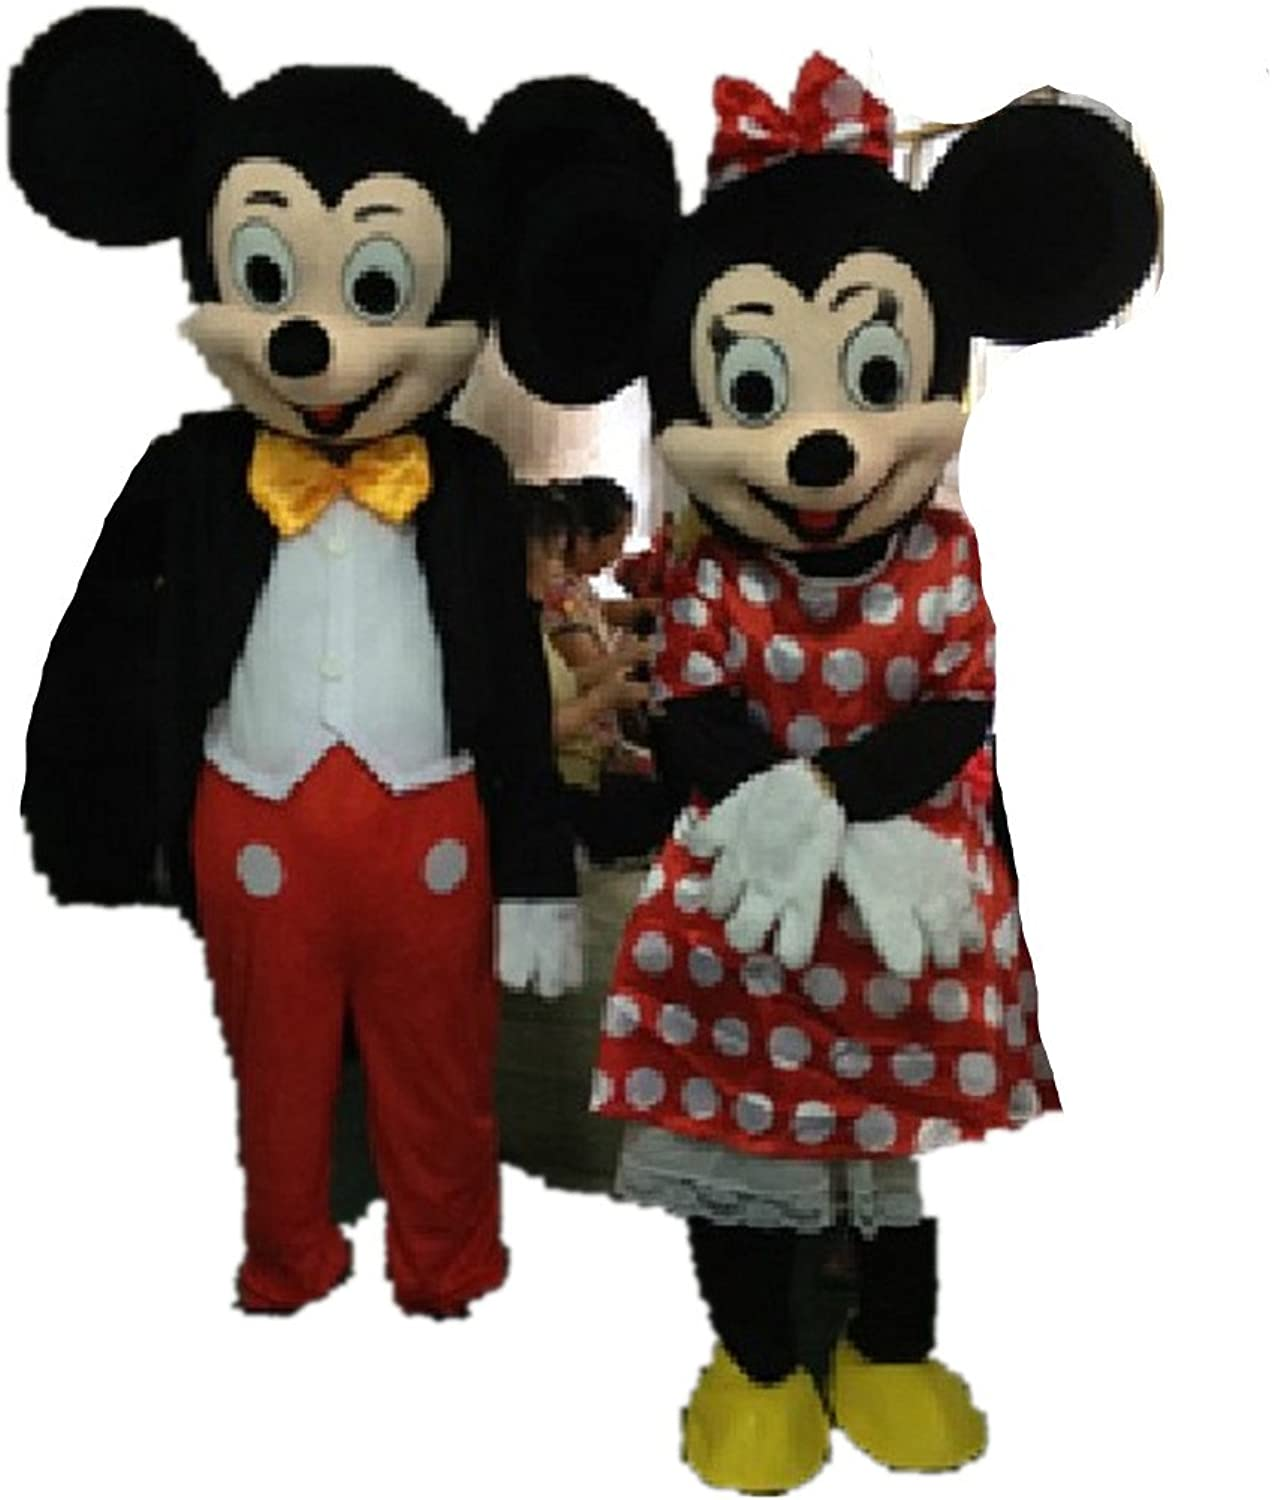 Cartoon mascot cosplay costume Mickey and Minnie cosplay costume price for one only